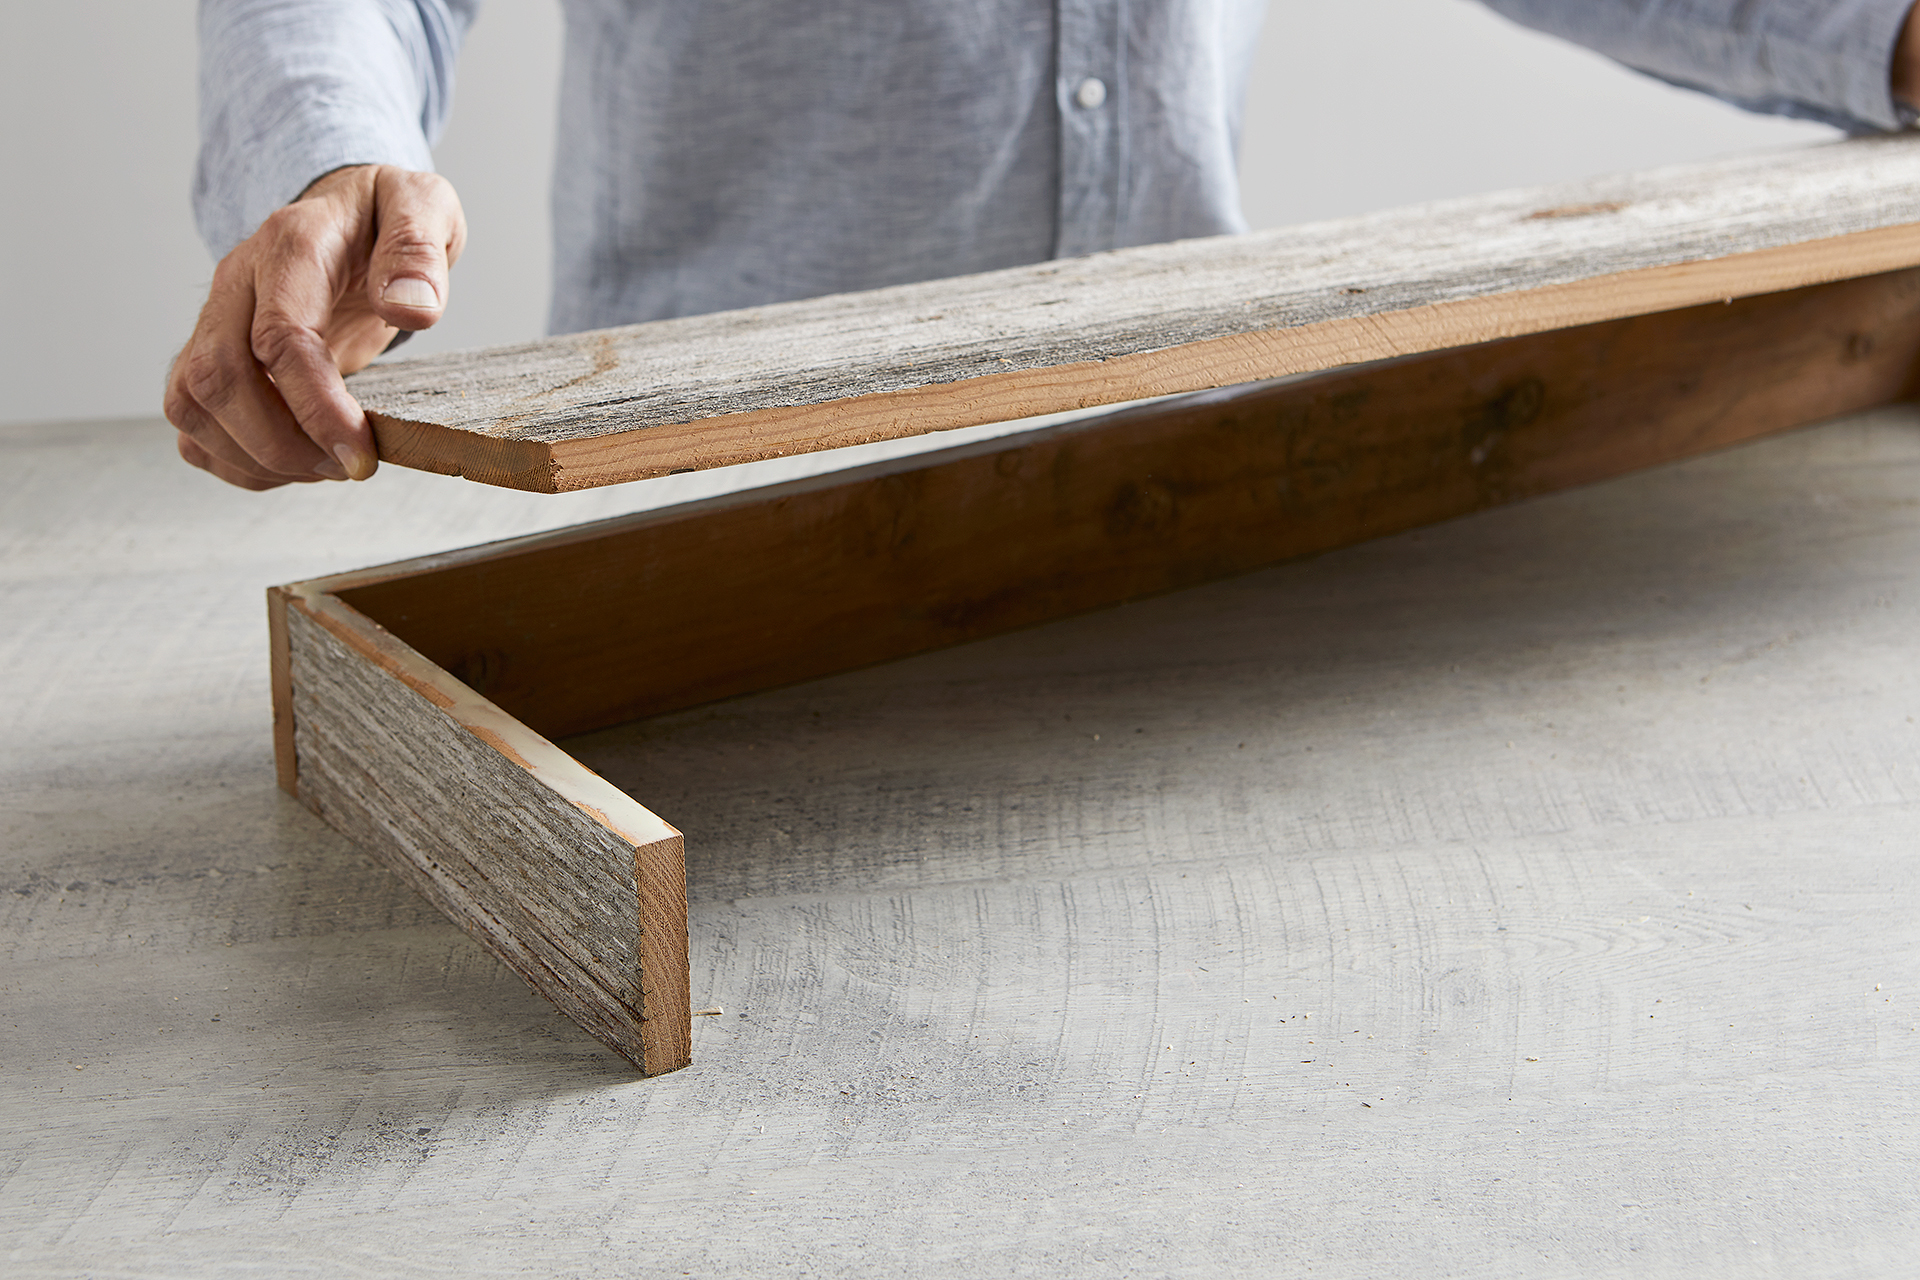 secure skirt board to farmhouse coffee table